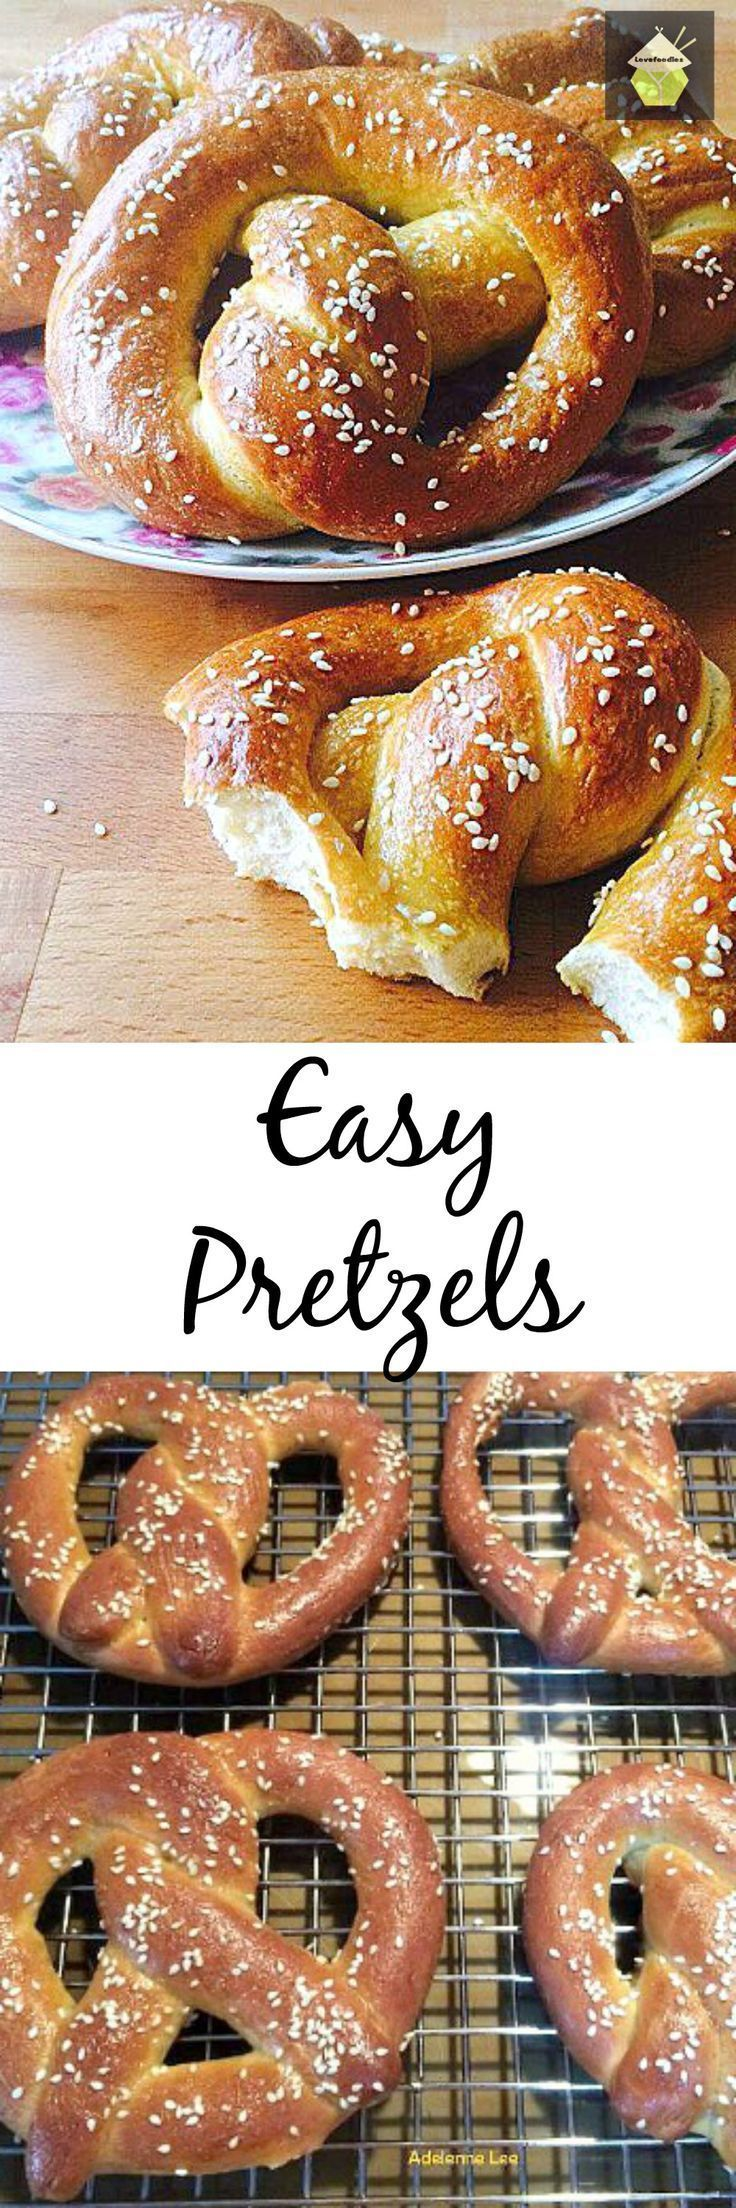 Easy Pretzels. These are delicious and easy to make. You can add sweet or savory toppings, such as a chocolate coating or melted cheese, very flexible! Great party food! #bread #pretzel #partyfood